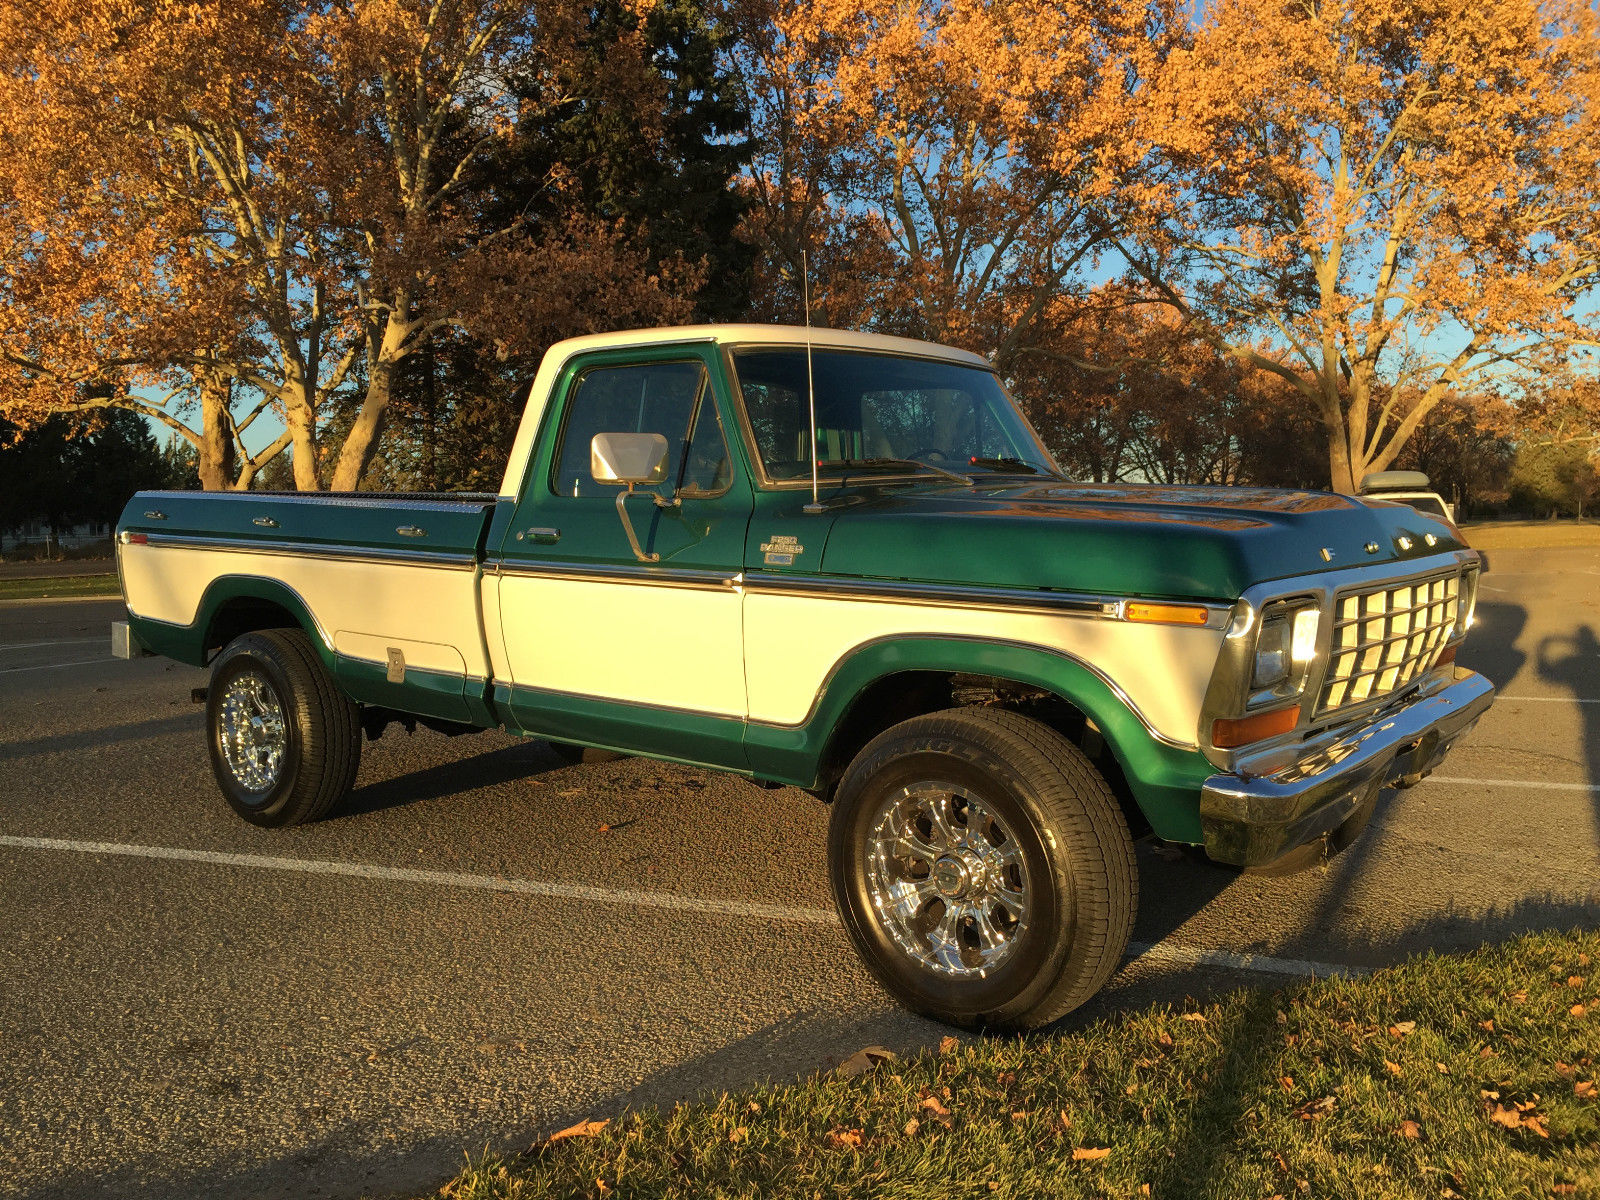 Ford F150 Lariat 4X4 For Sale >> 1979 FORD F-250 LARIAT HIGHBOY 4X4 91K MILES 1 PREV OWNER ...